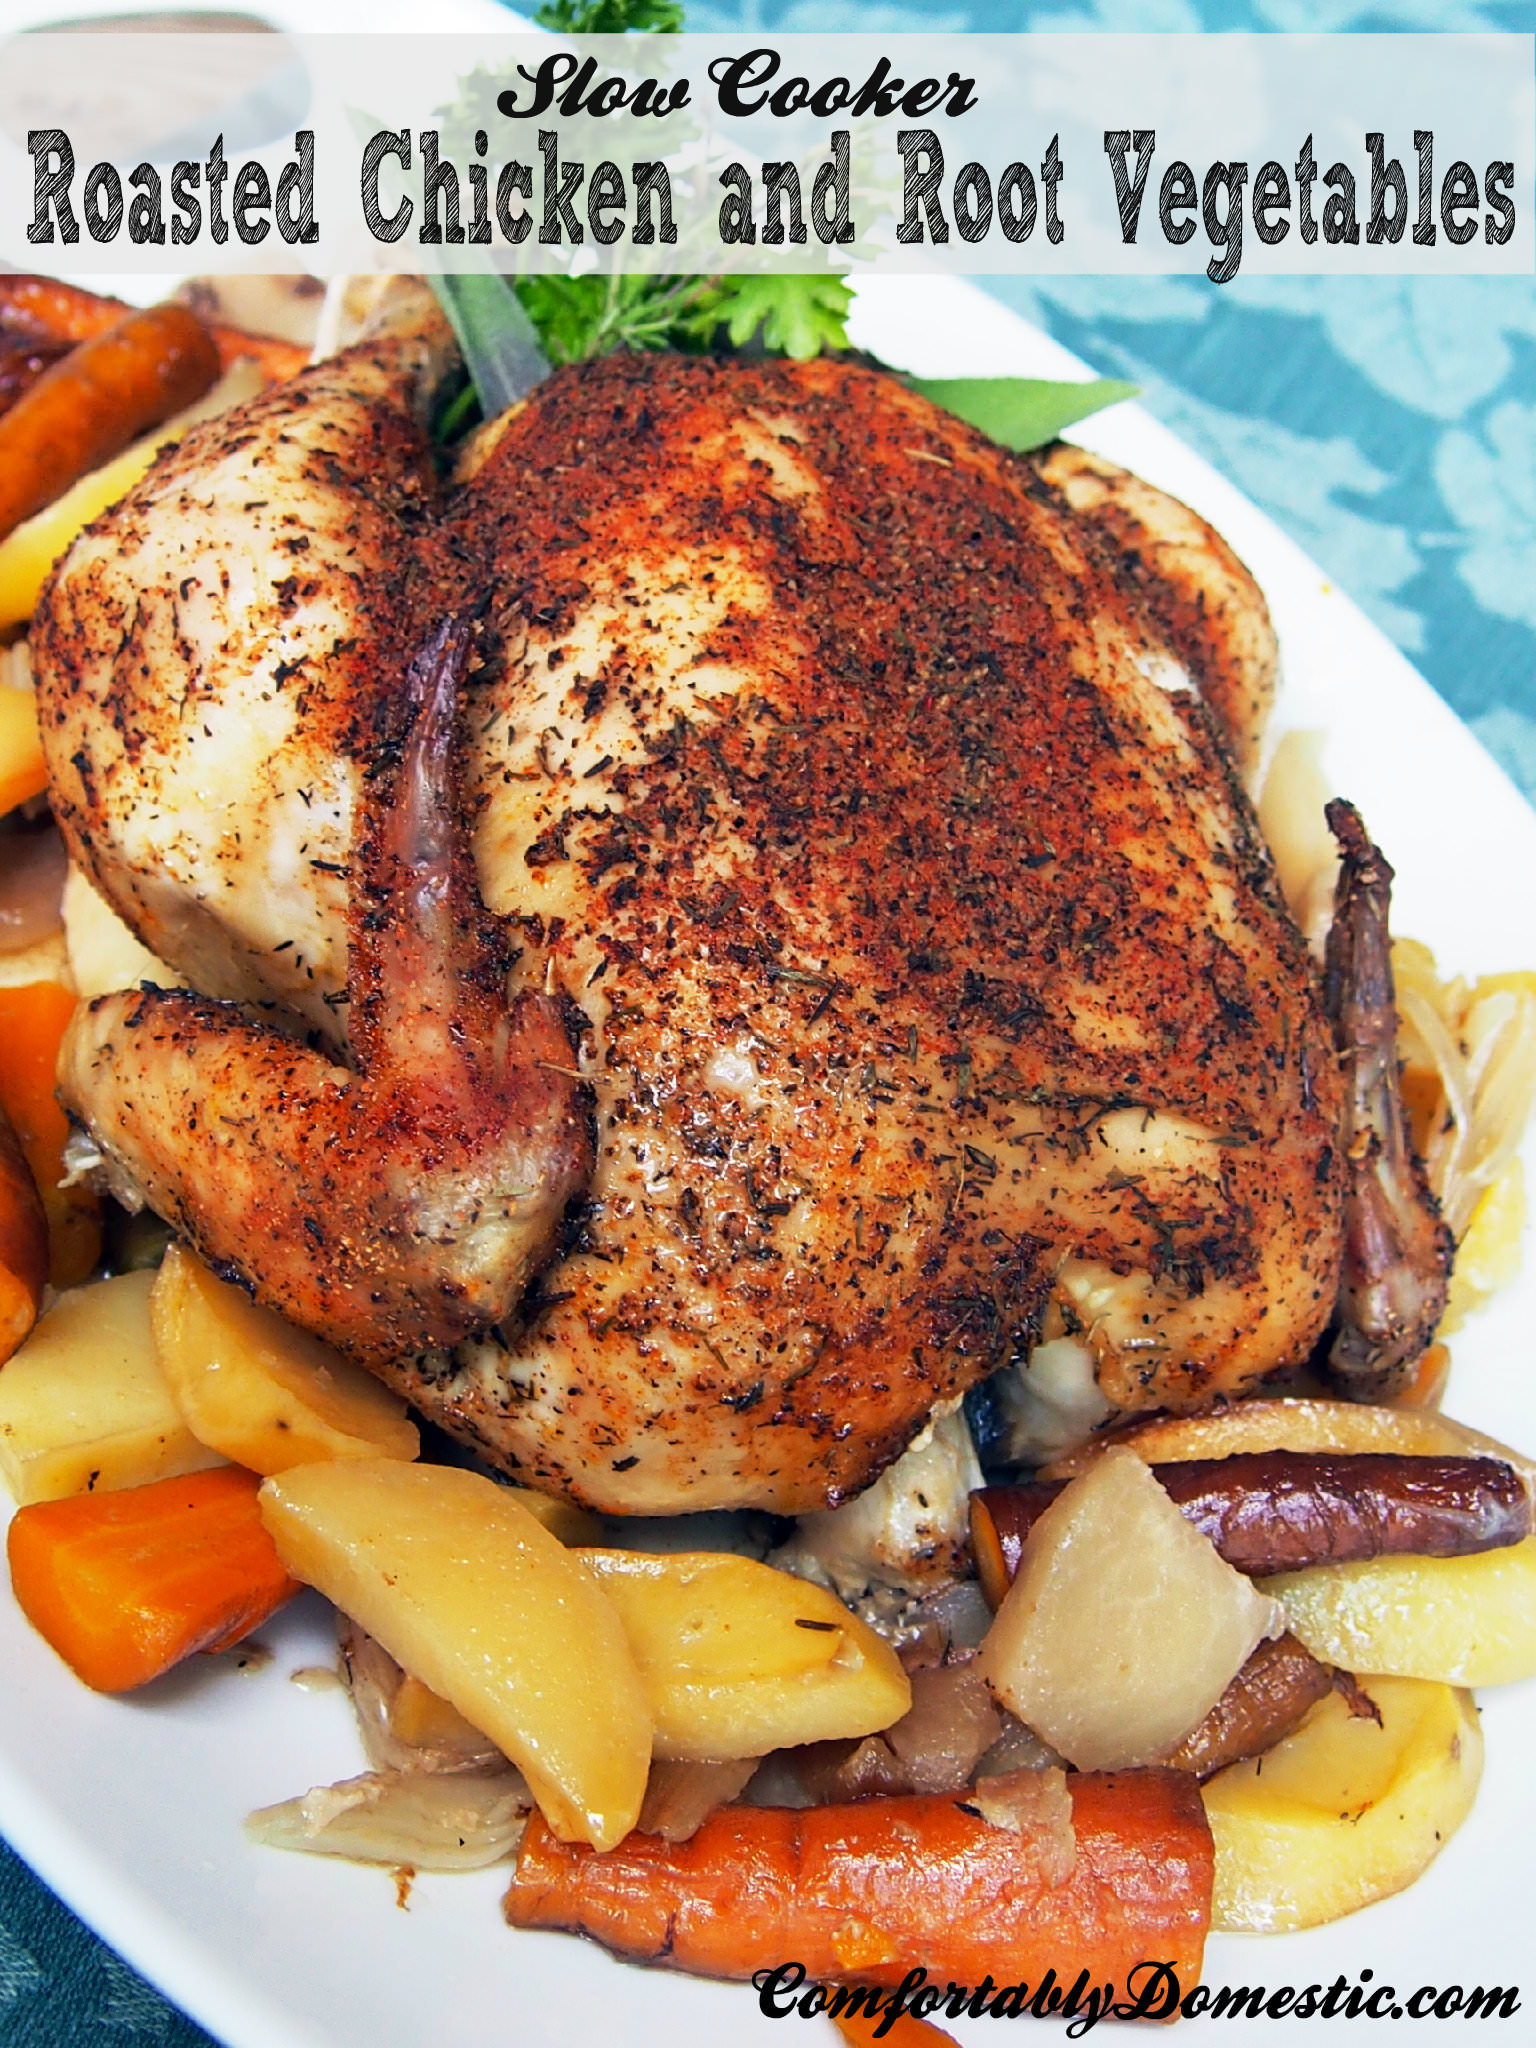 Crockpot Roasted Chicken and Root Vegetables | ComfortablyDomestic.com